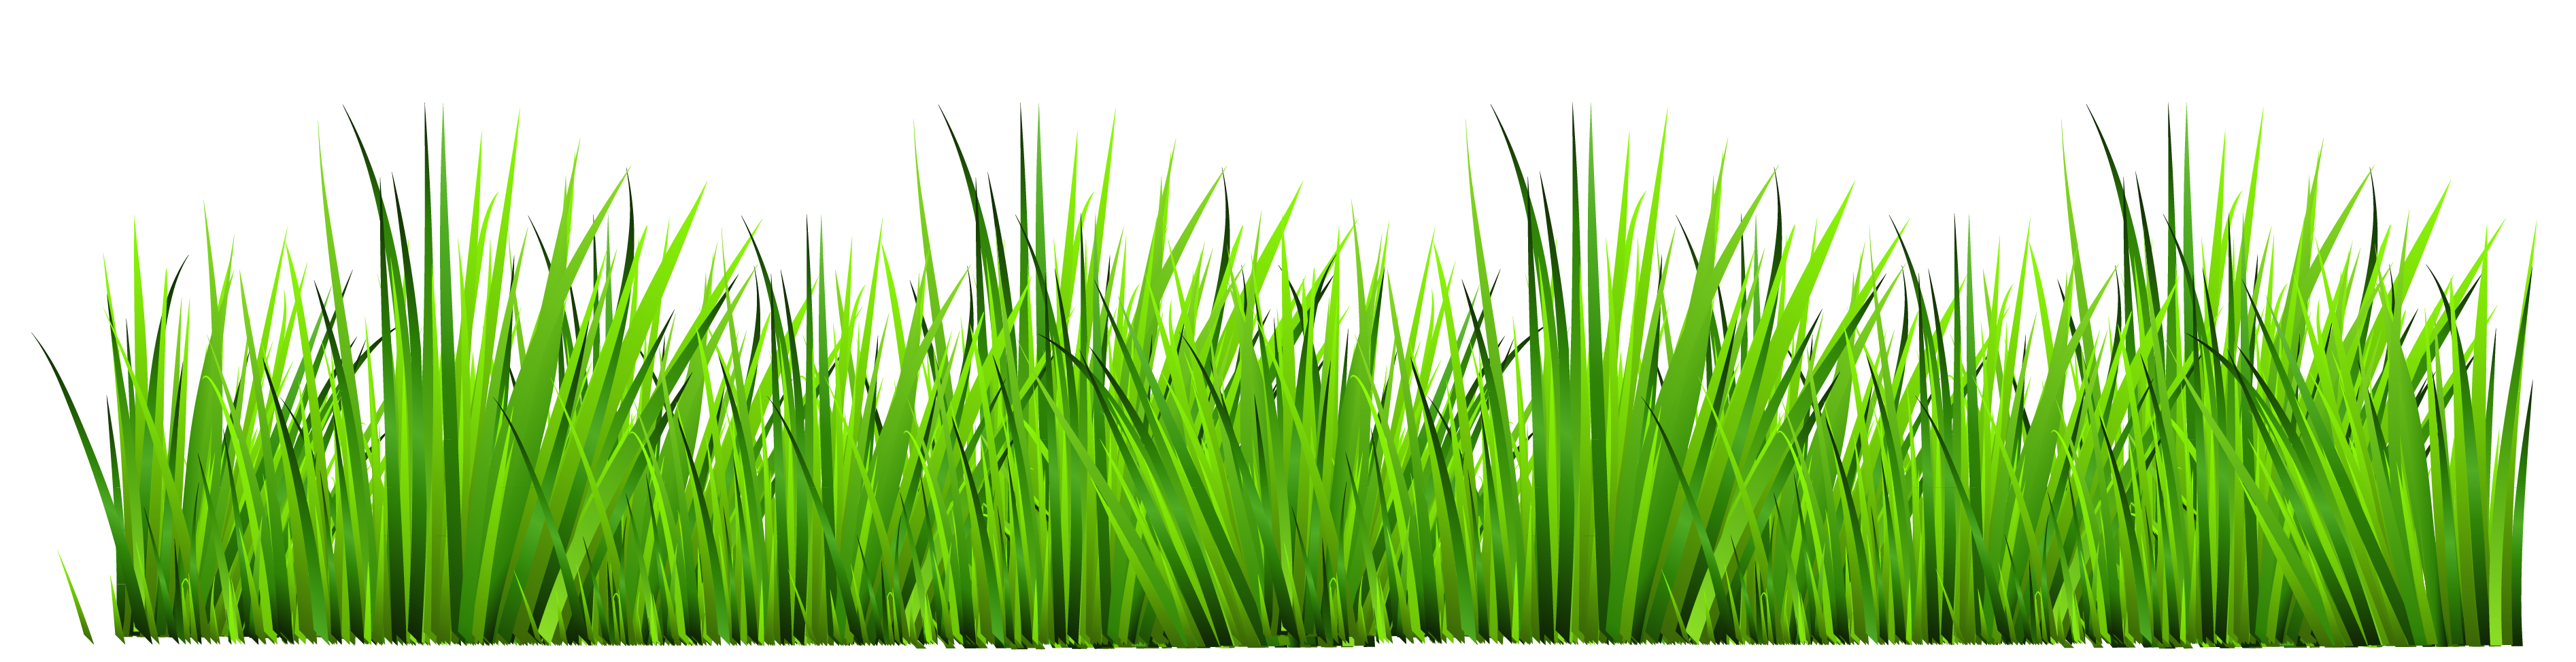 Grass clip art free clipart images